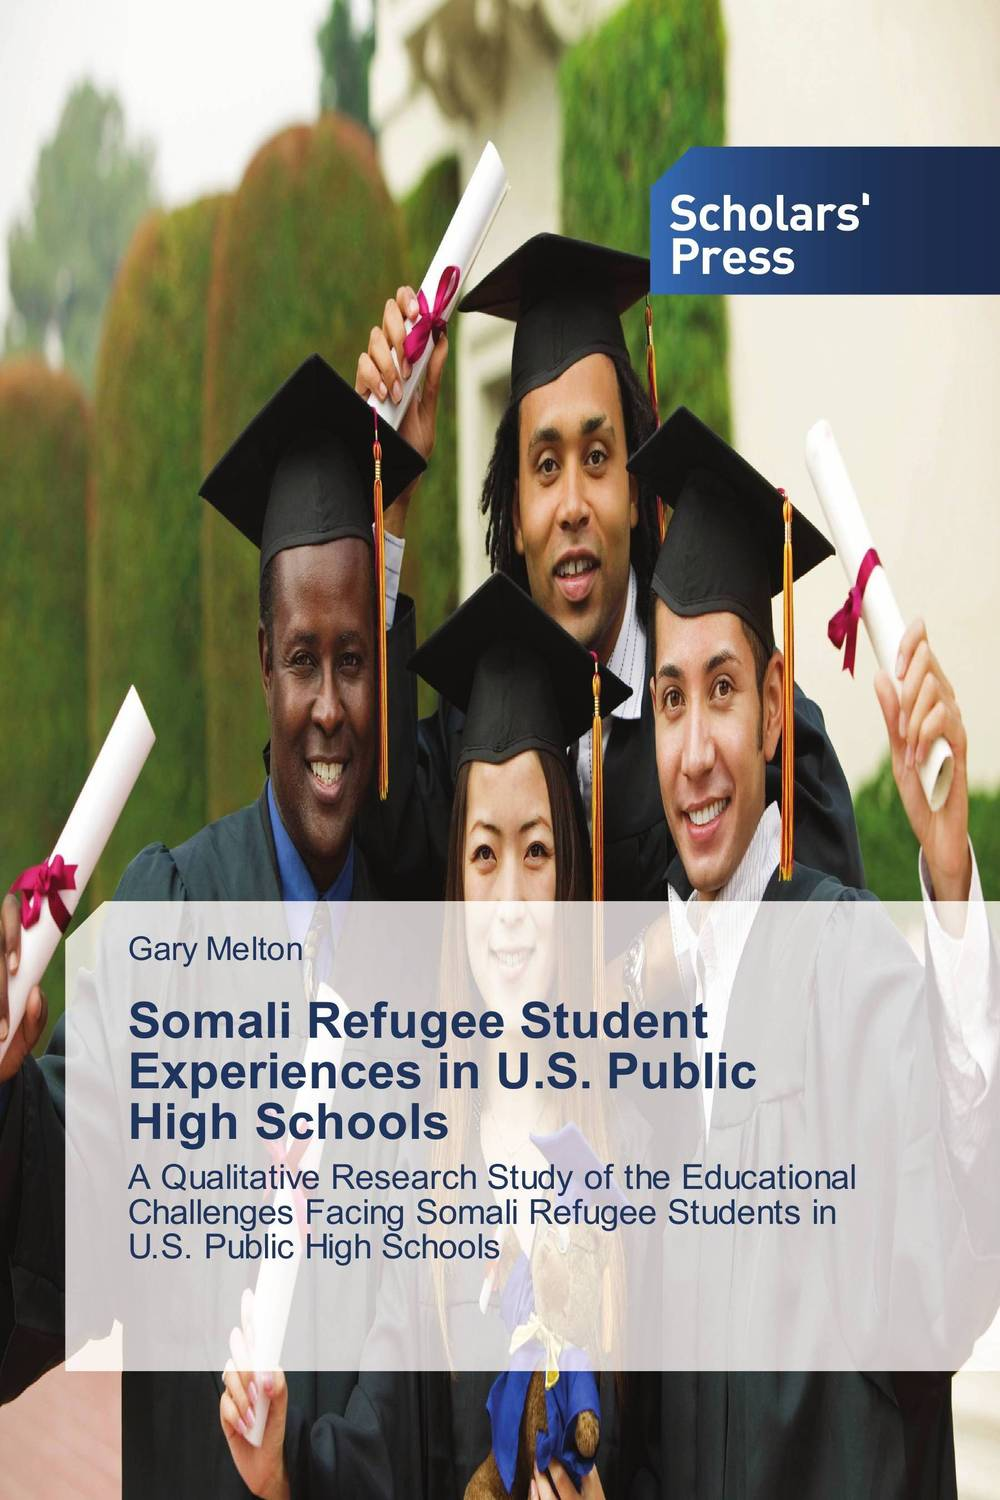 Somali Refugee Student Experiences in U.S. Public High Schools administrative challenges facing public secondary schools